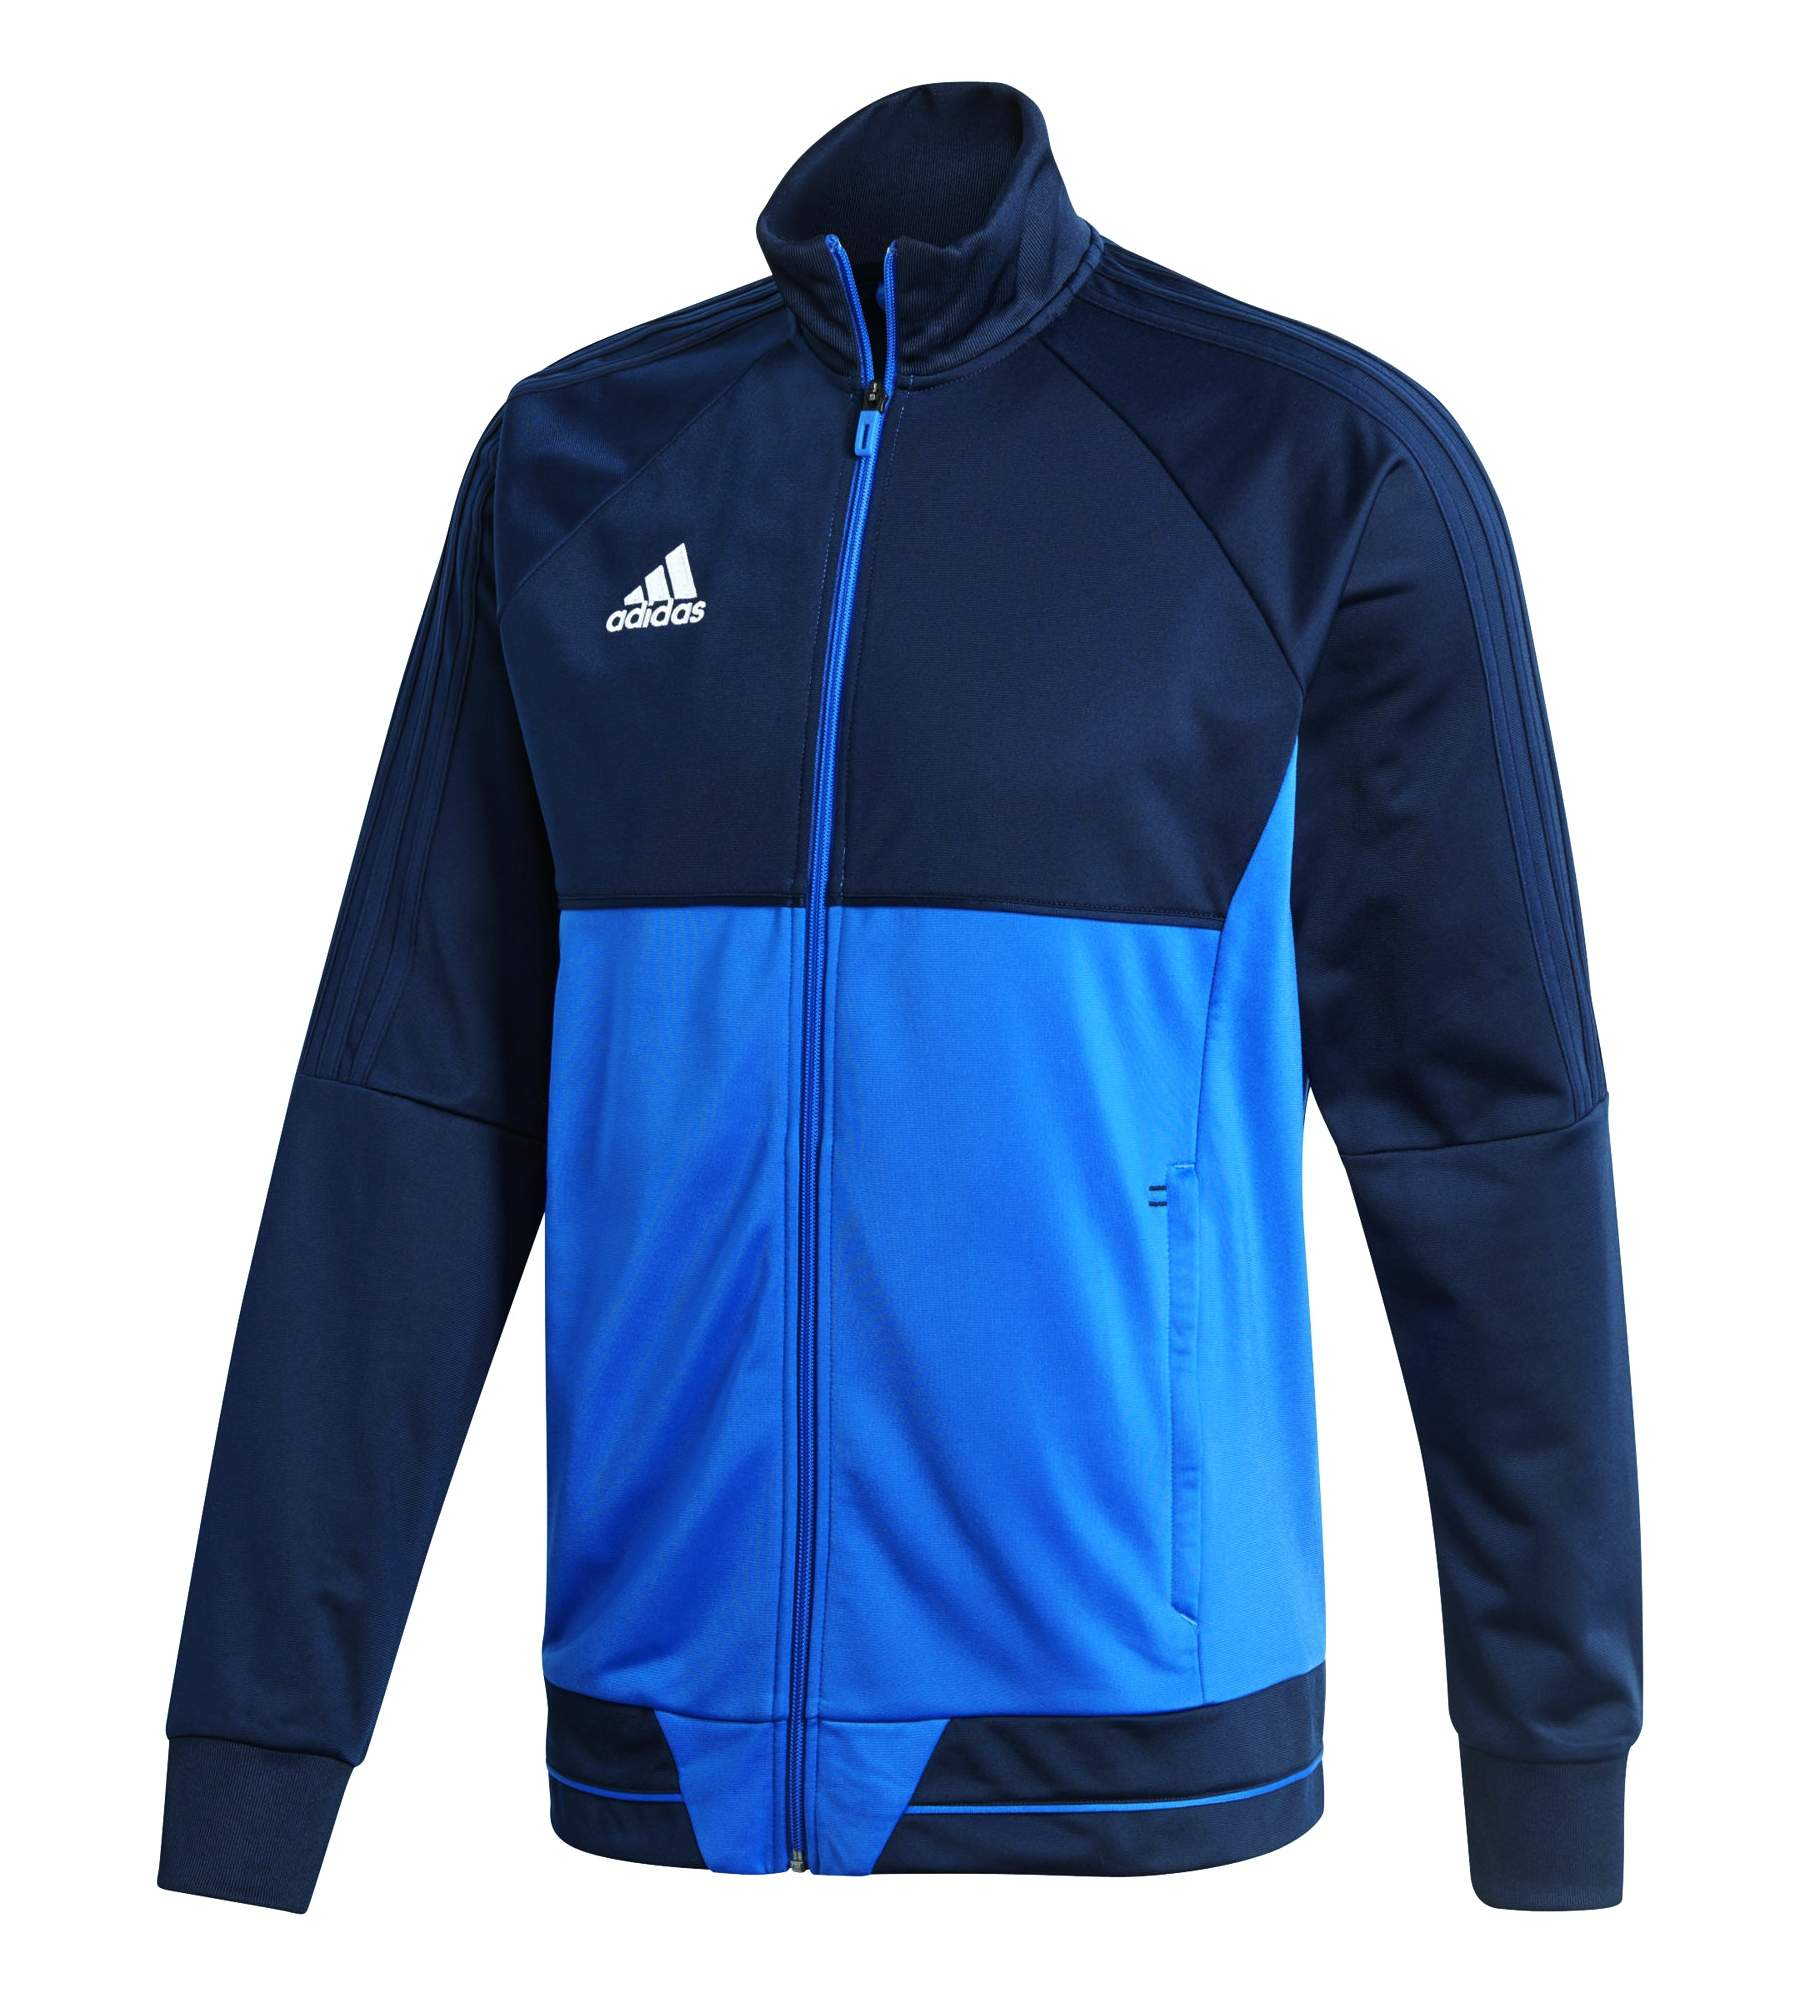 Details about Adidas Mens Collegiate Navy Blue White Tiro 17 Training Jacket Track Top Size M